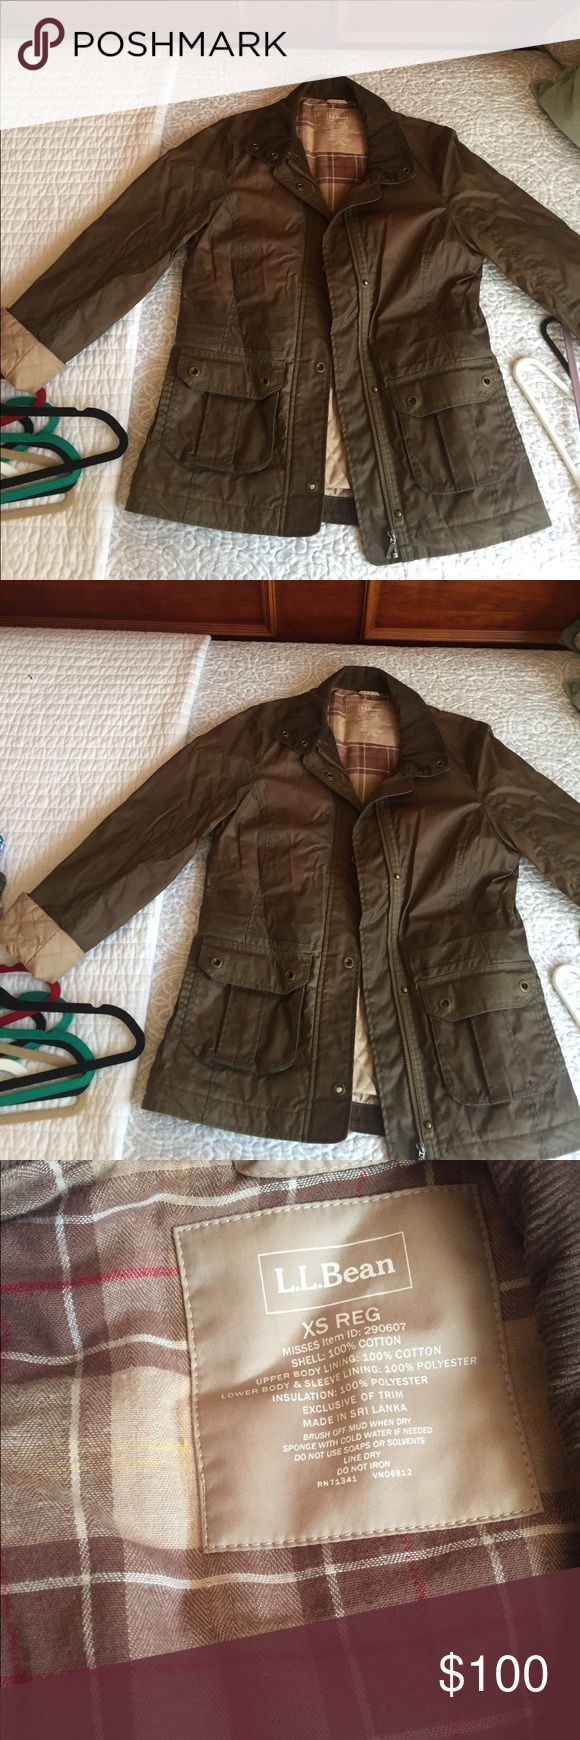 LL Bean waxed jacket LL Bean waxed jacket. XS, but runs large would fit a small as well. Only worn once or twice. Nice quilted inside, very warm and classic. L.L. Bean Jackets & Coats Utility Jackets